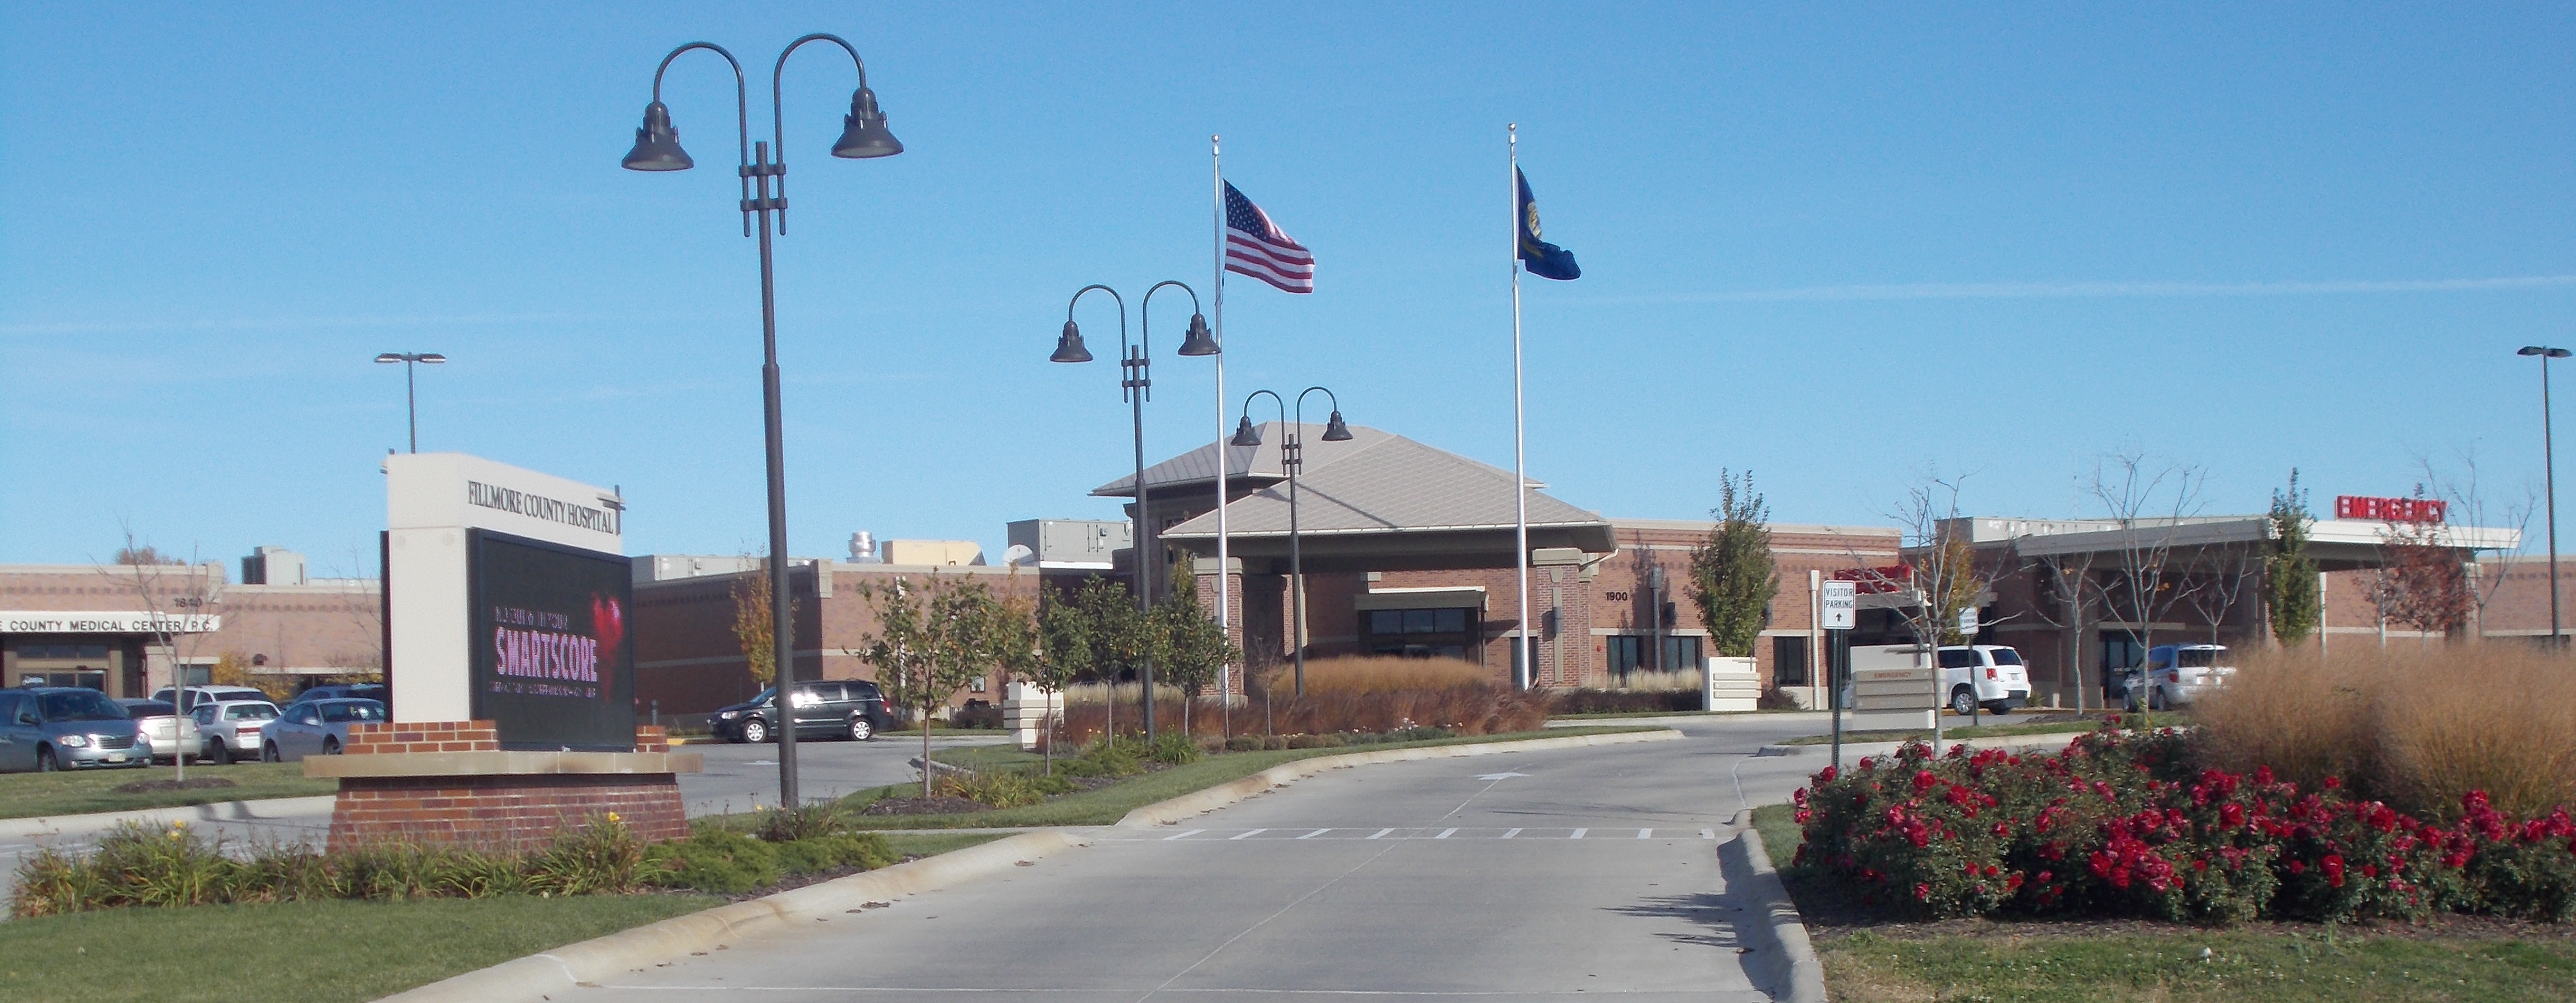 Fillmore County Hospital- EWM